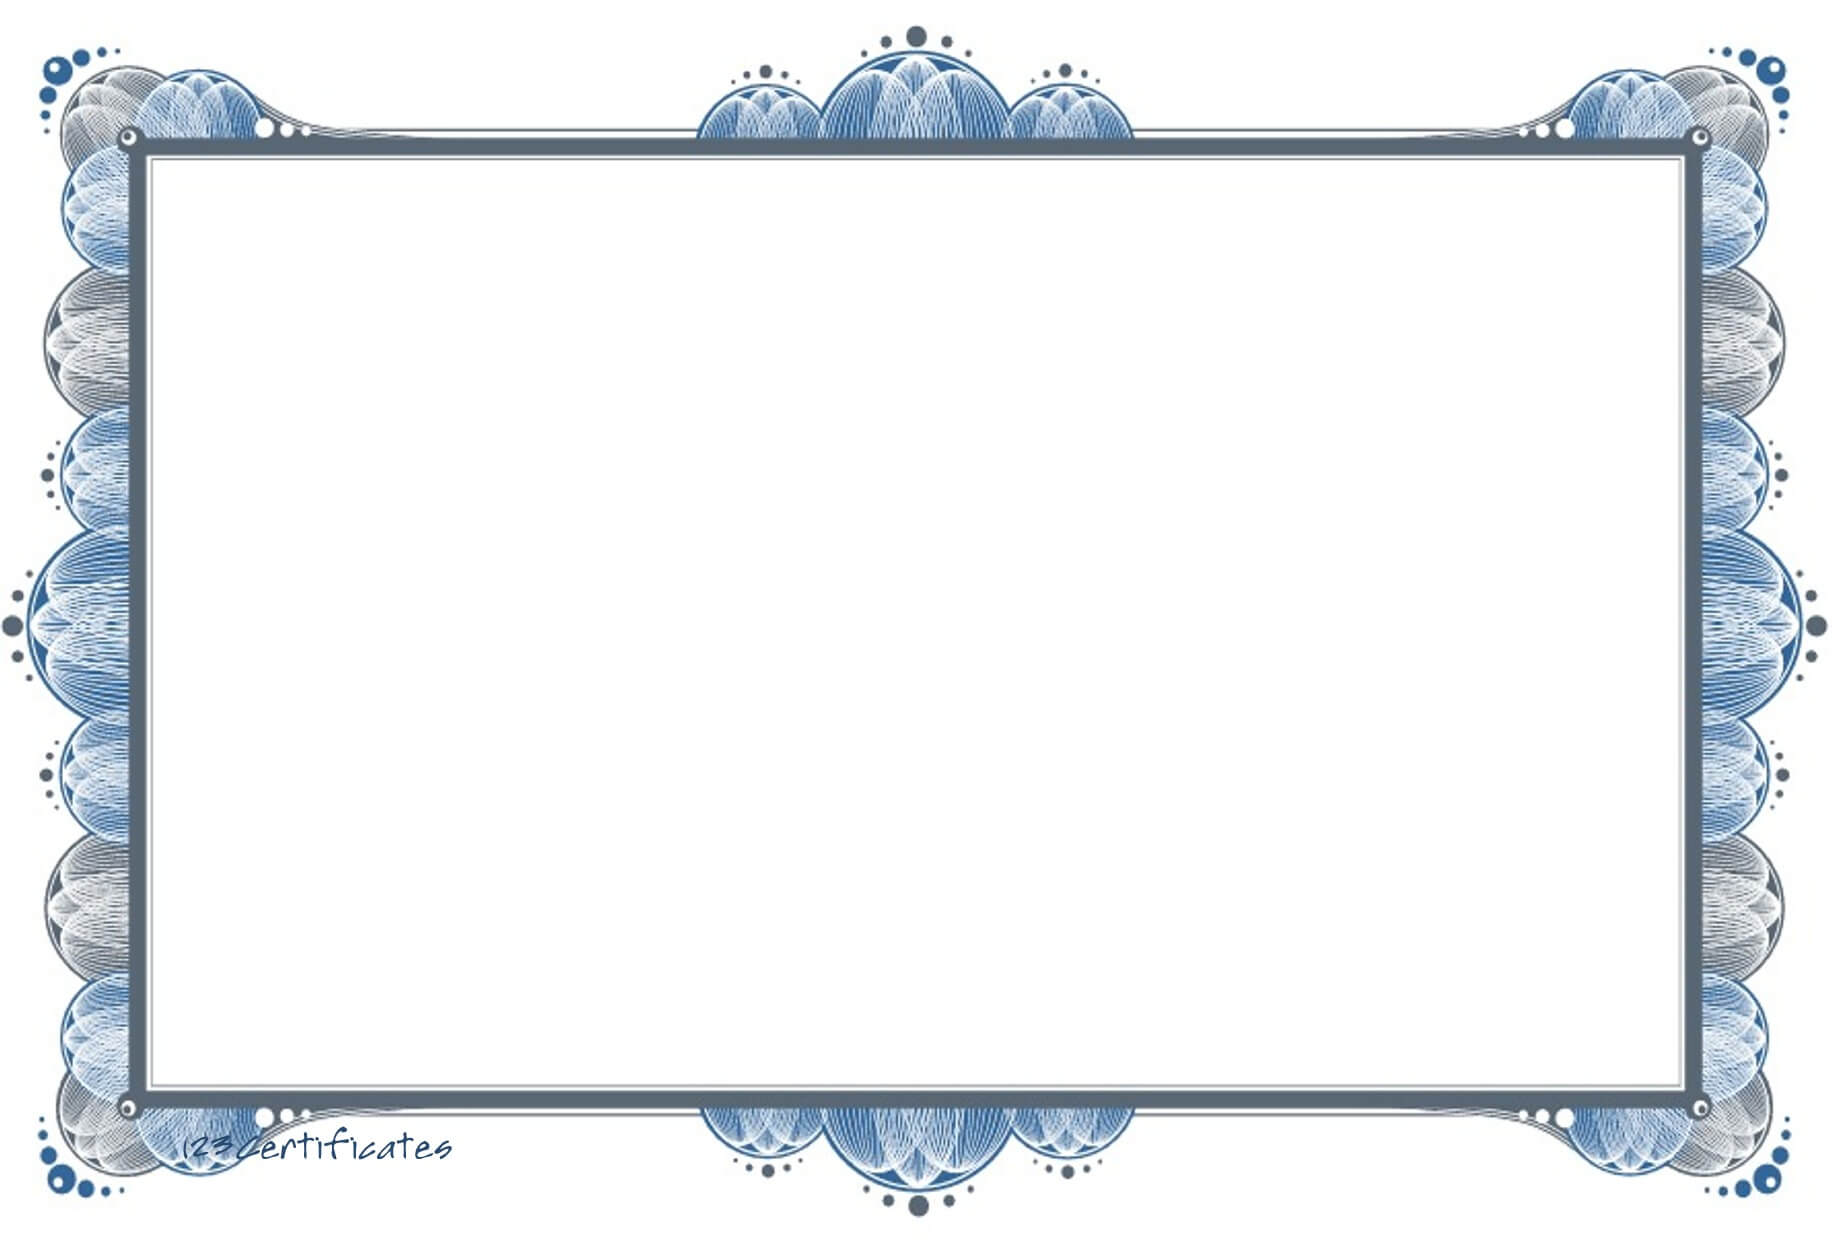 Free Certificate Border, Download Free Clip Art, Free Clip Intended For Certificate Border Design Templates